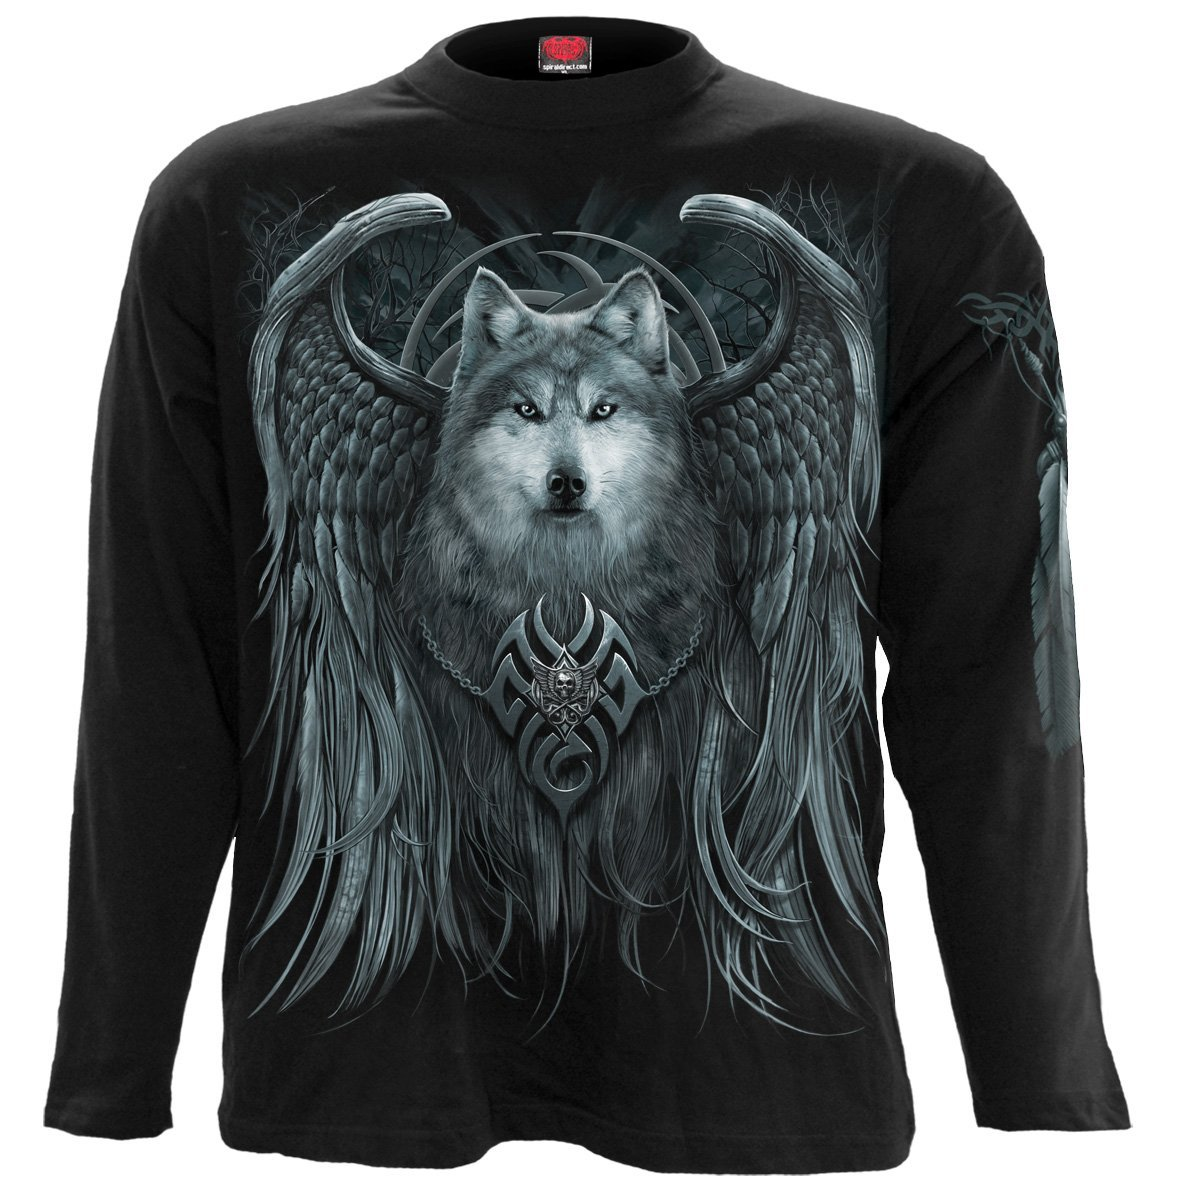 Howling Wolf Spirit Men's Black Longsleeve Shirt